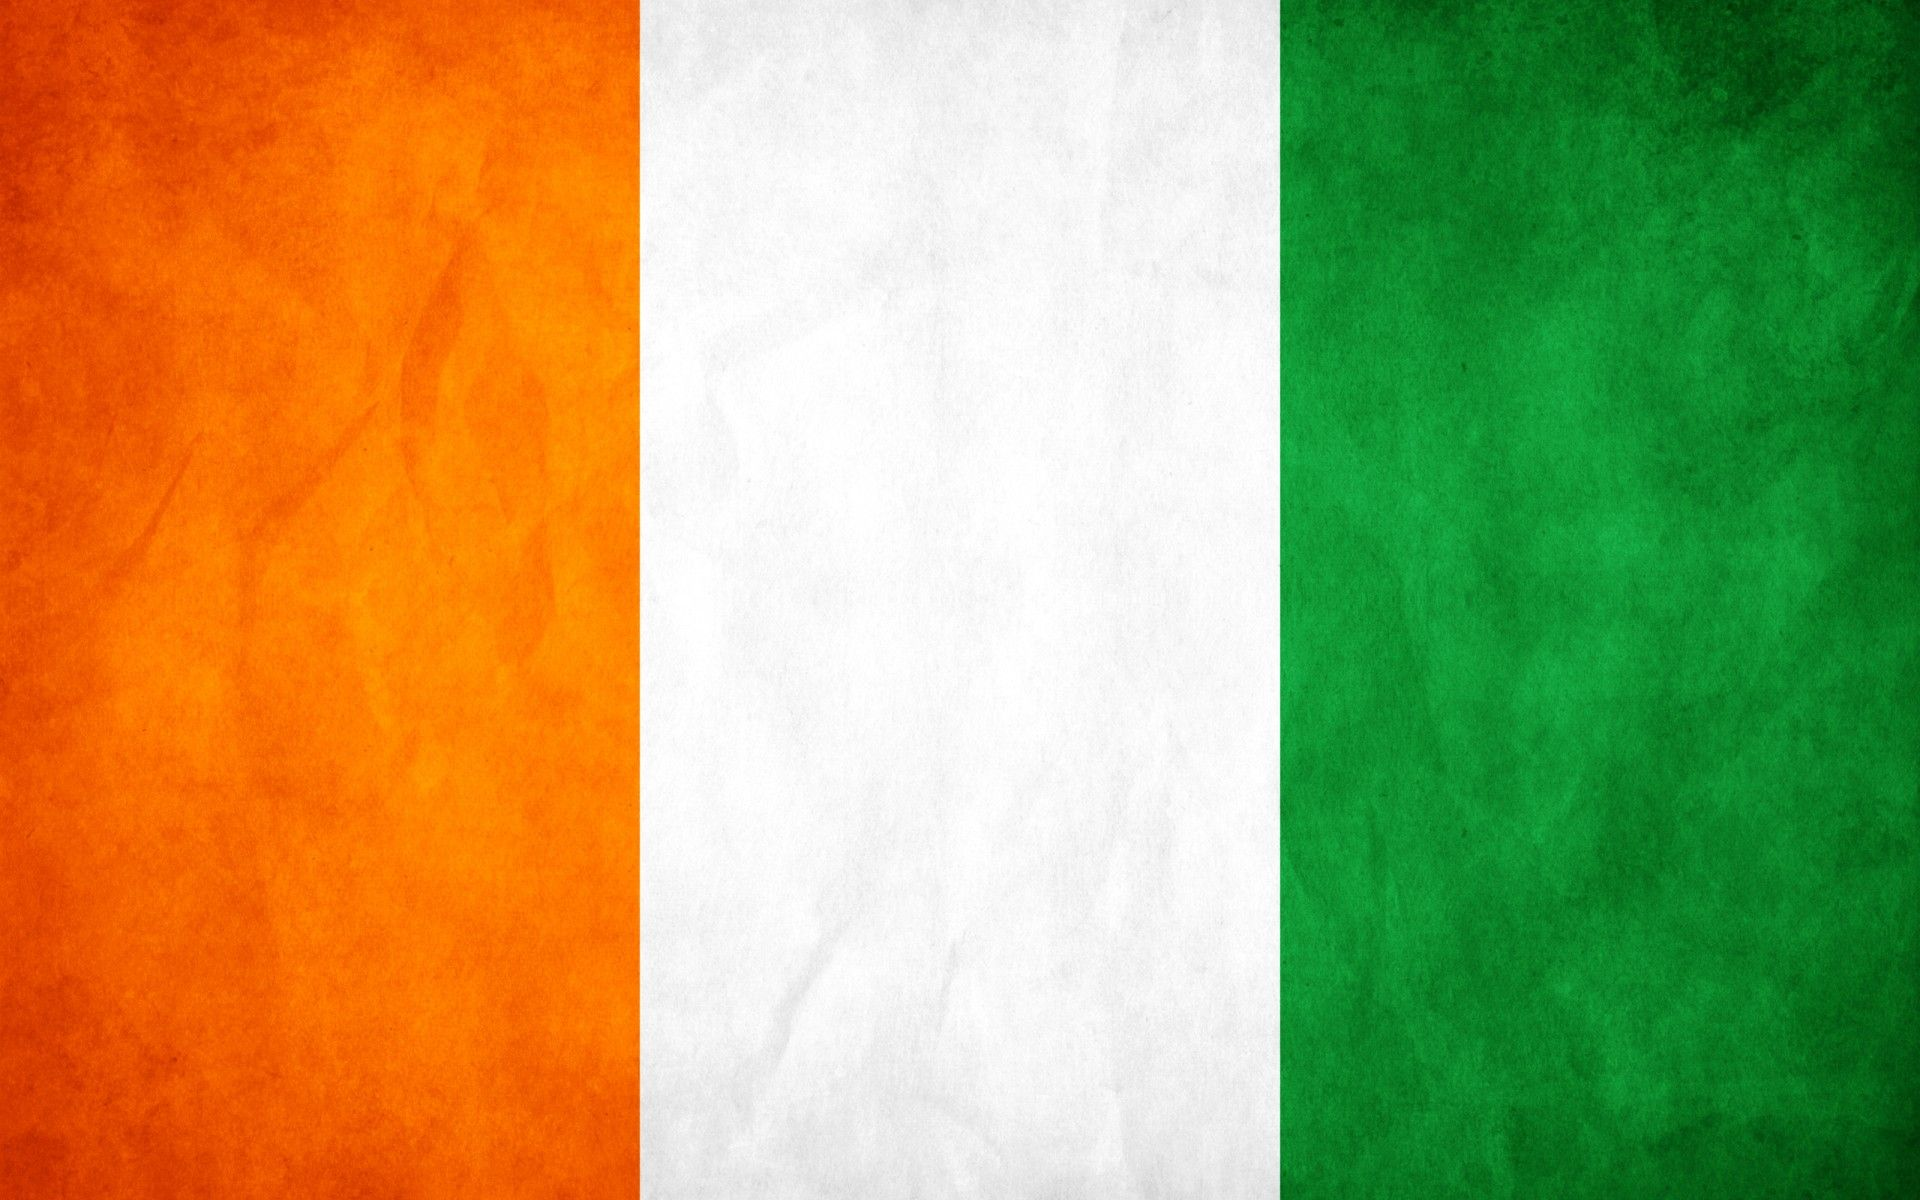 Ireland Flag - Grunge | Cool Wallpapers | Pinterest | Ireland